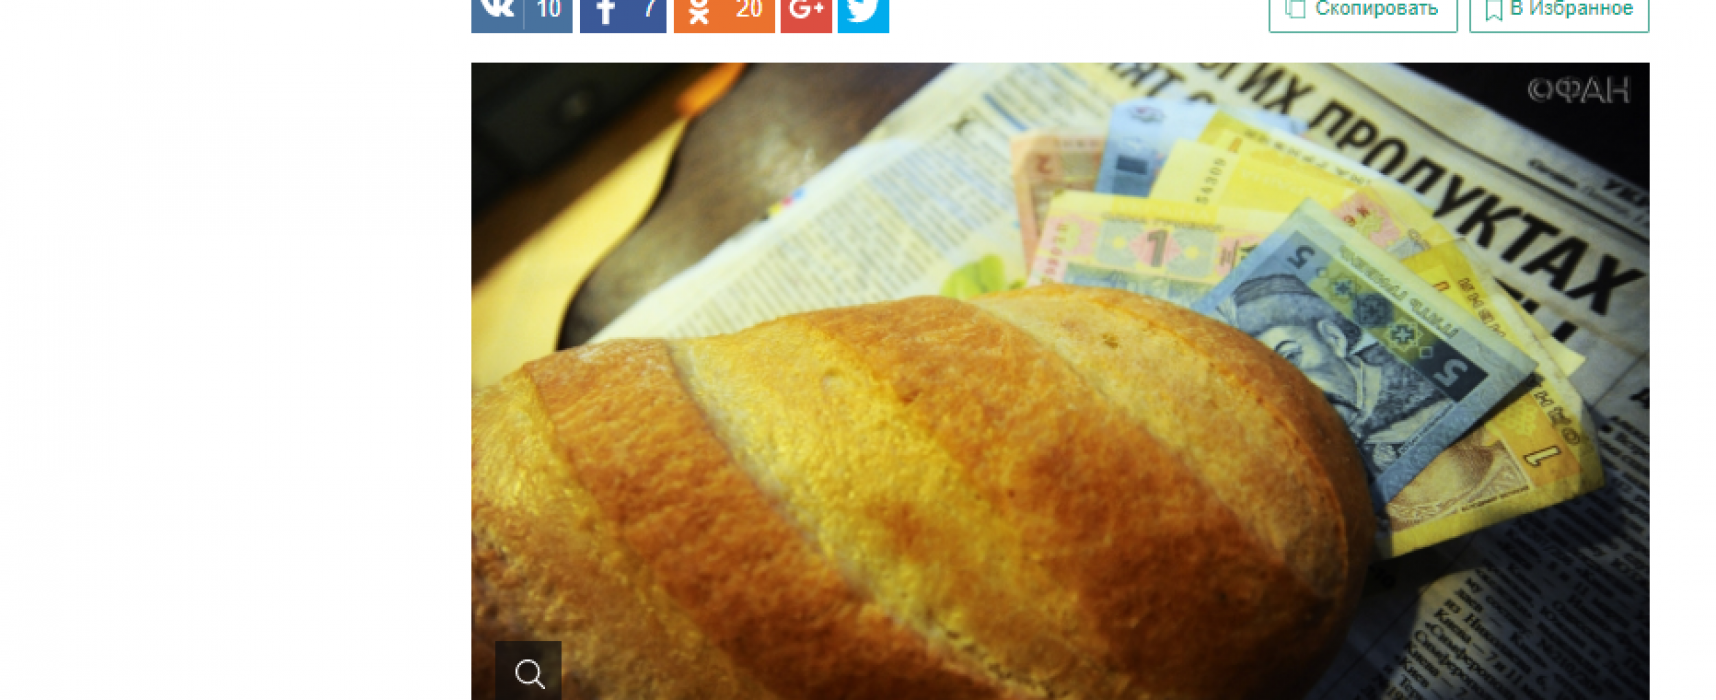 Fake: Ukraine to Introduce Food Ration Cards